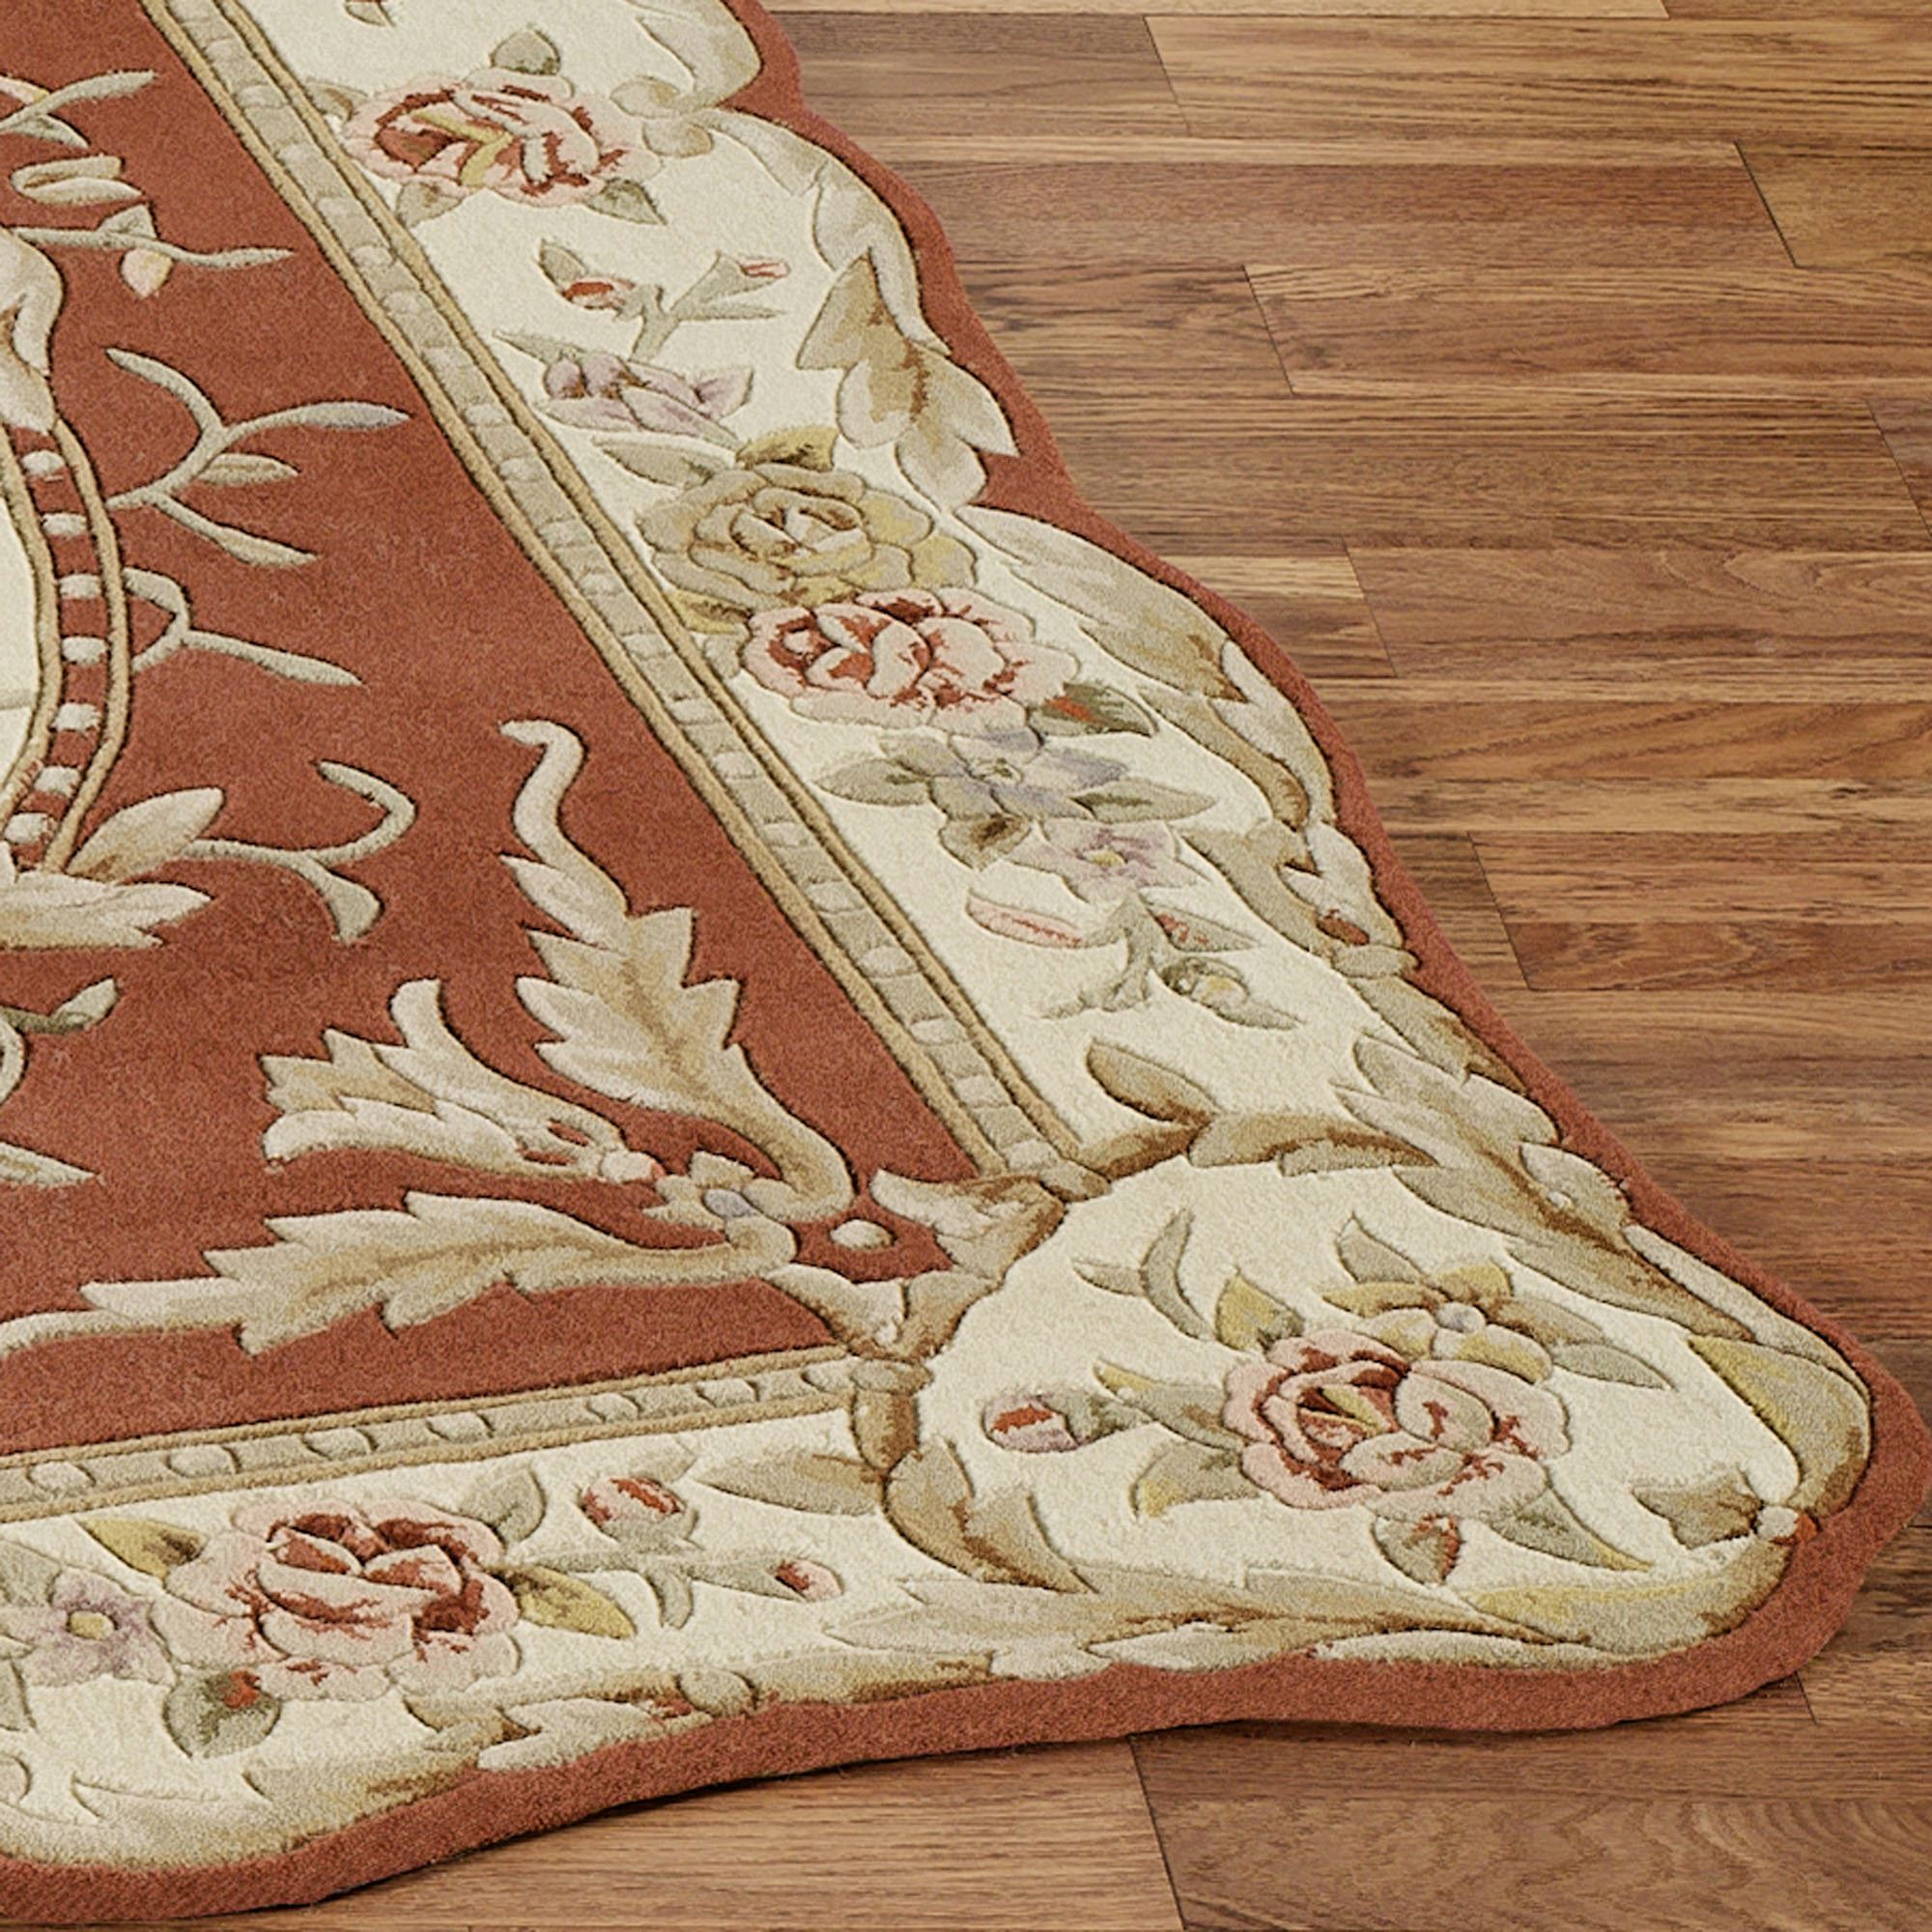 Rugs With Roses On Them Rugs Ideas